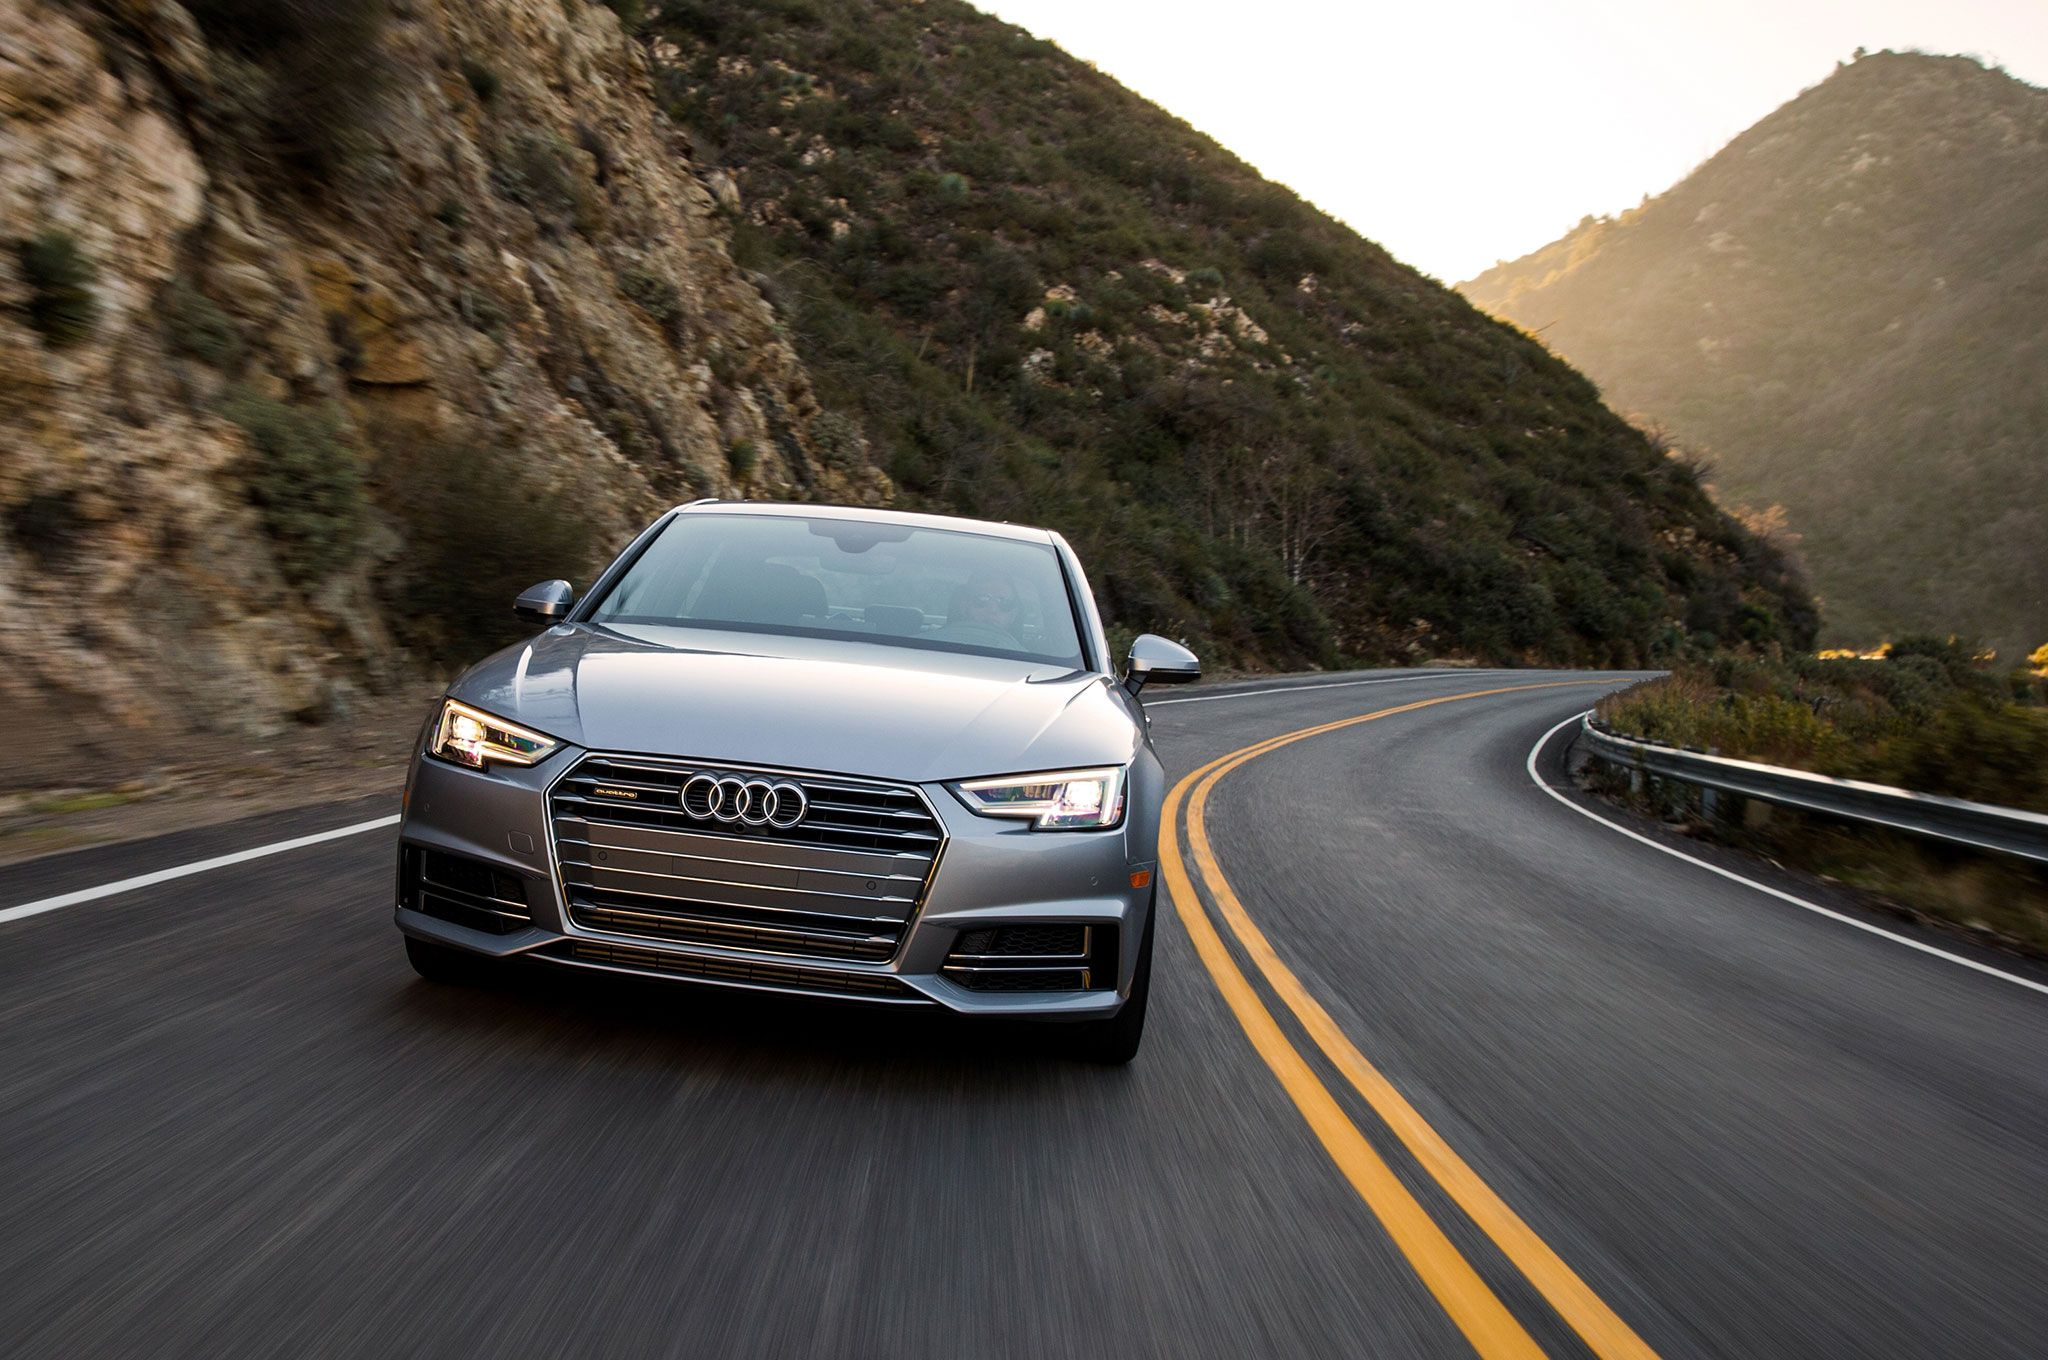 Sleek Aerodynamics Empowered With The Boosting Engine Of The New Audi A4 For More Detail Https Www Germancartech Co Uk Audi New Luxury Cars Audi A4